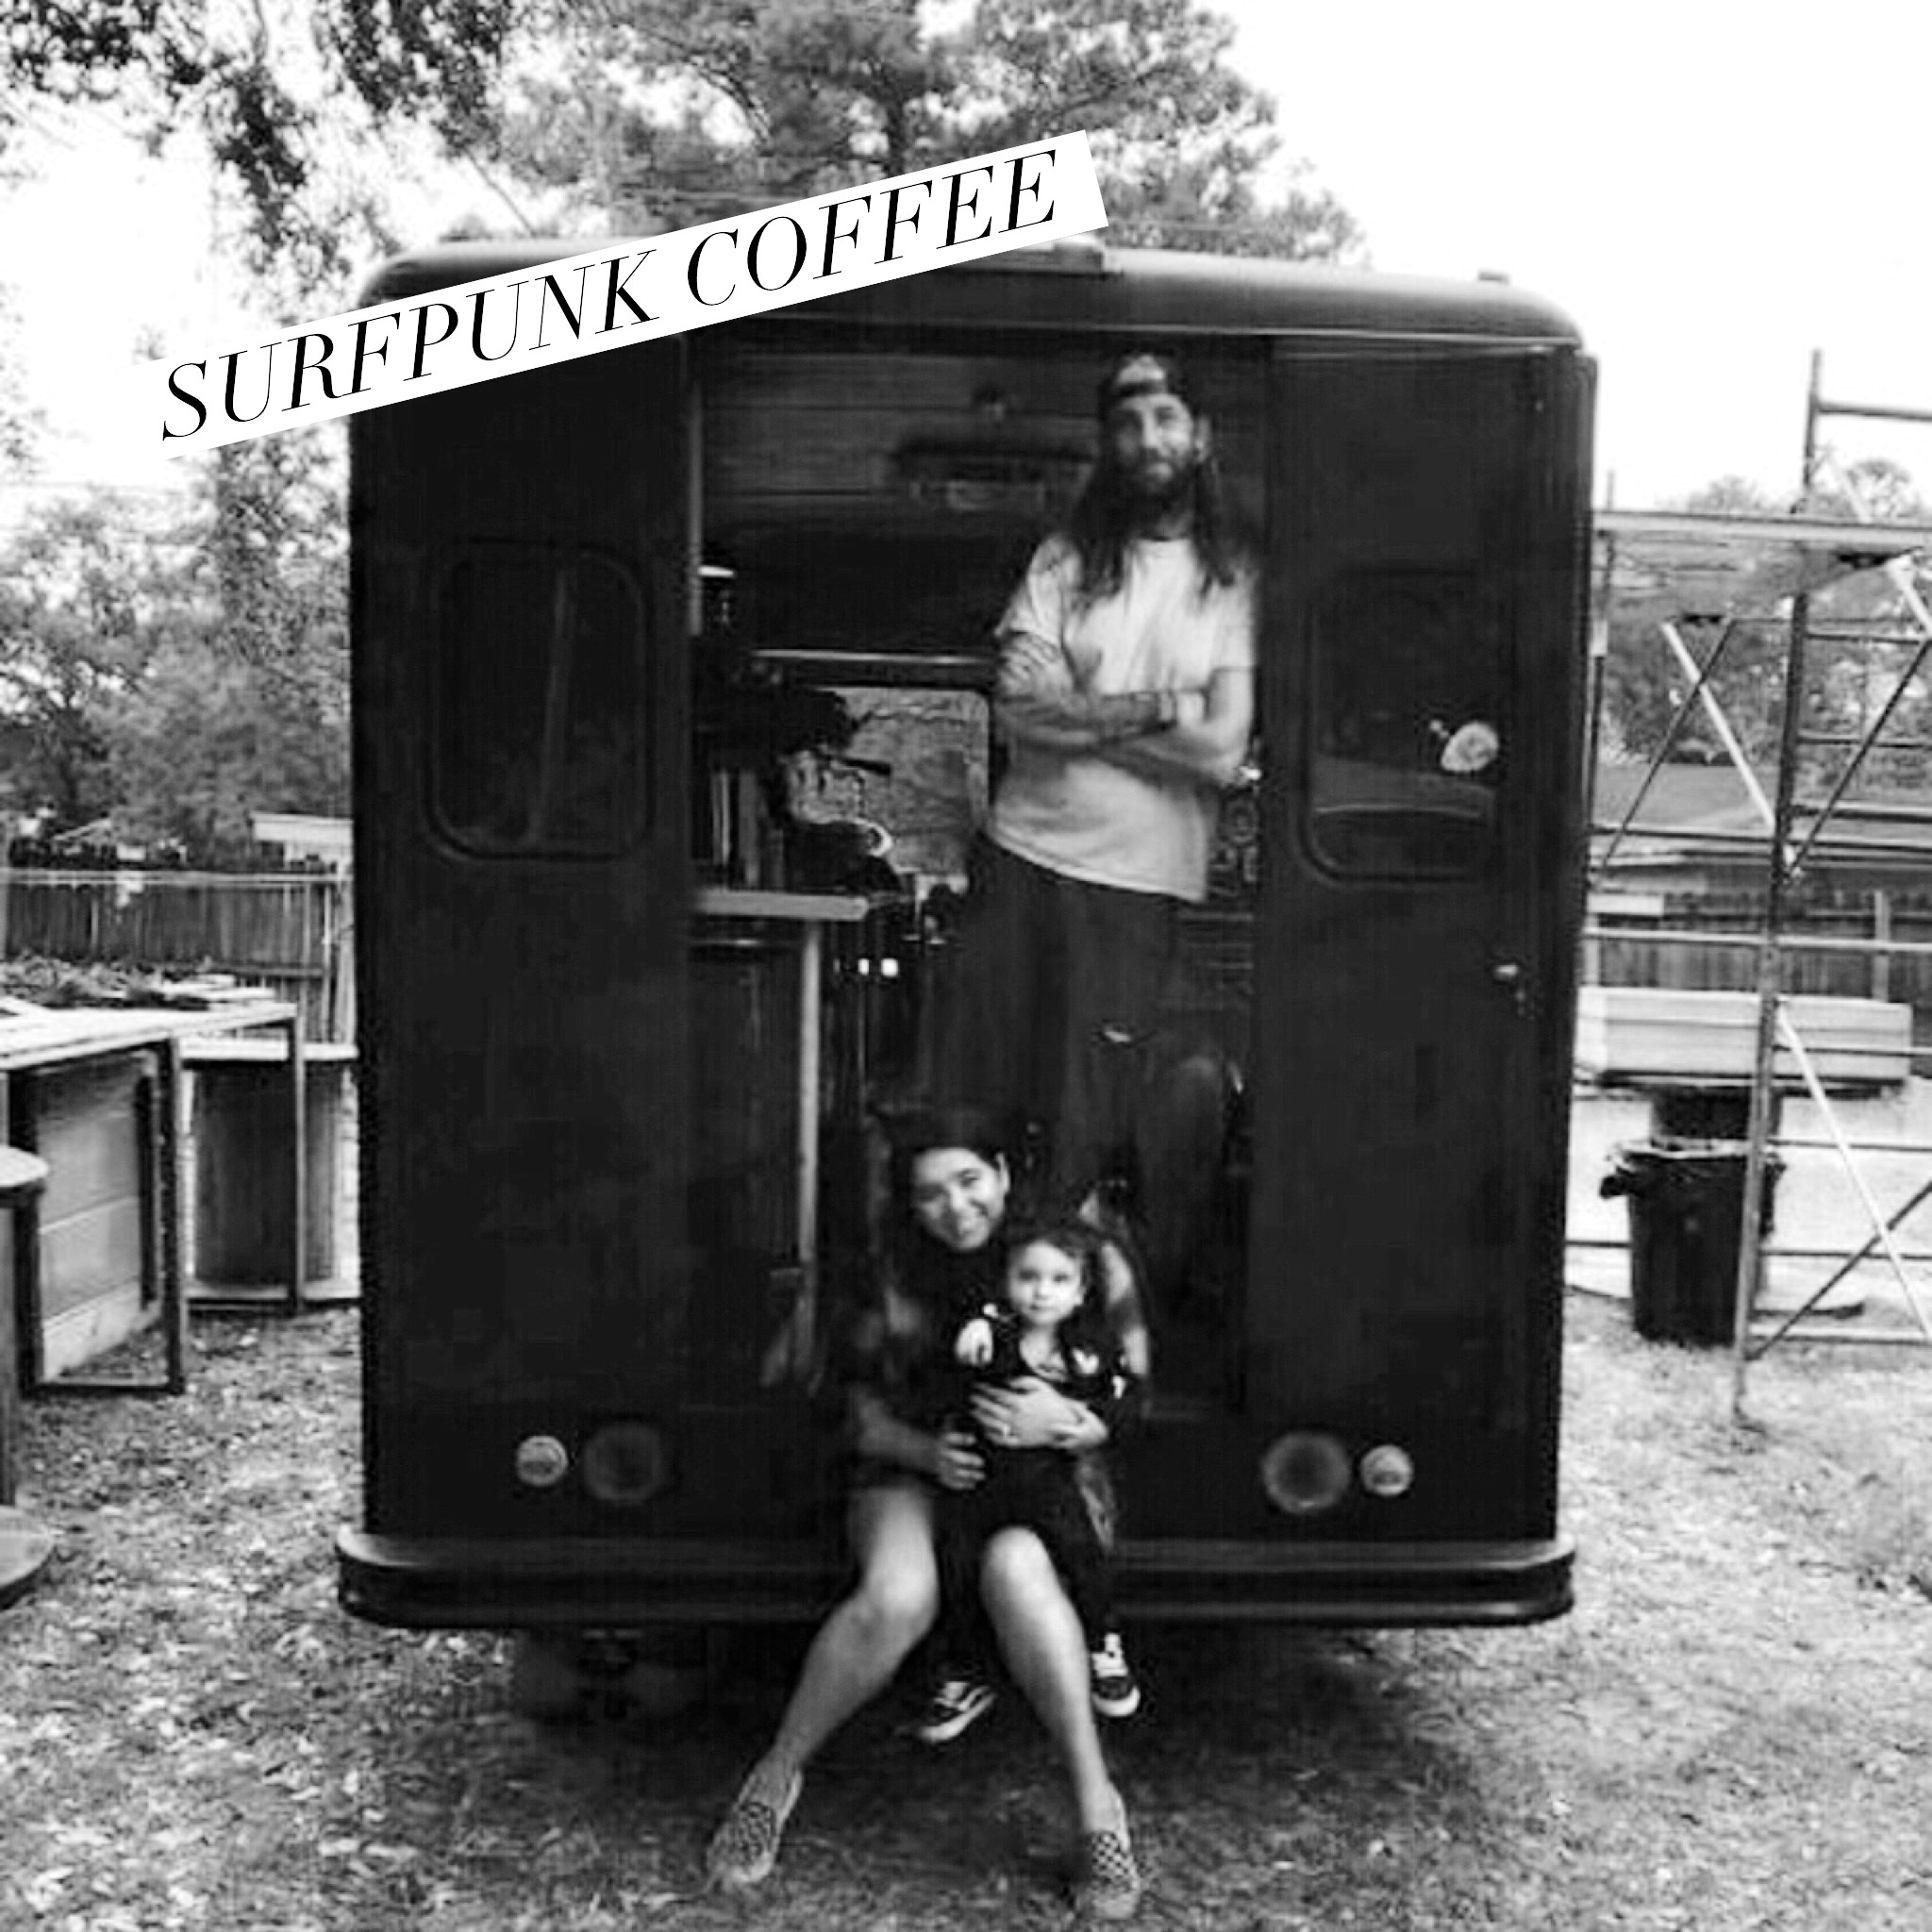 The SurfpunkCoffee Truck and Family